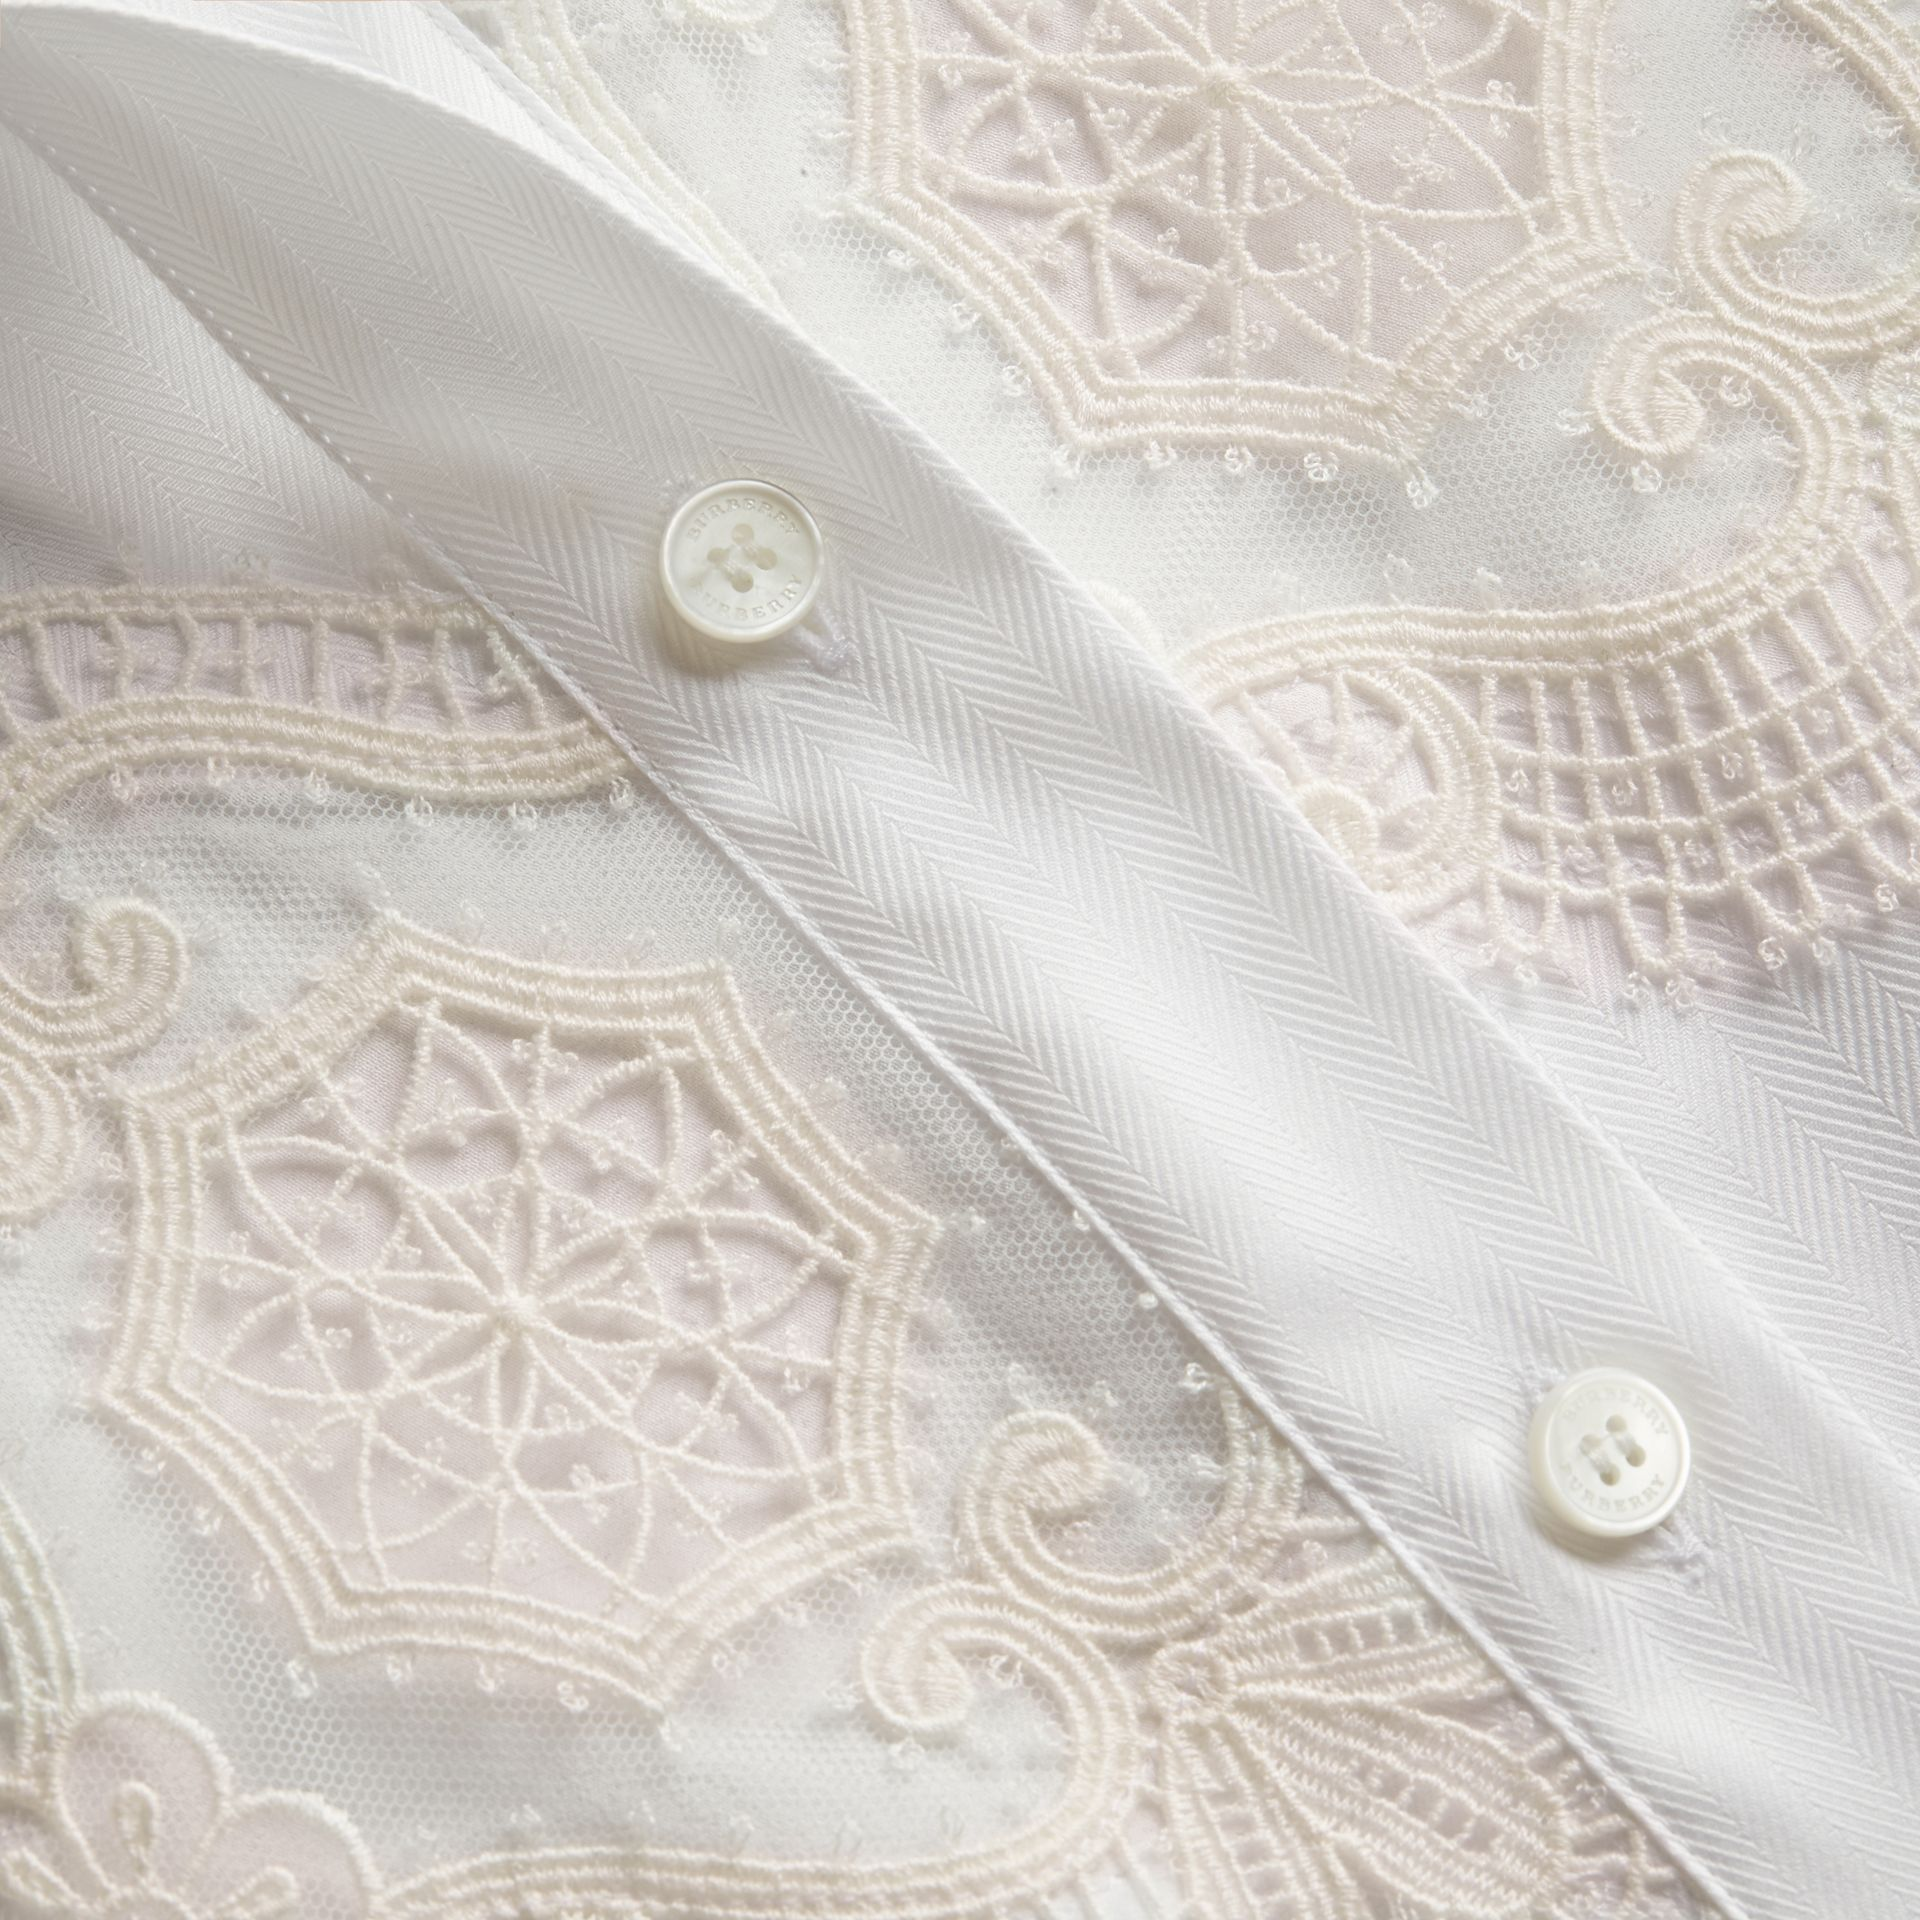 Lace Cutwork Herringbone Cotton Shirt in White - Women | Burberry - gallery image 2